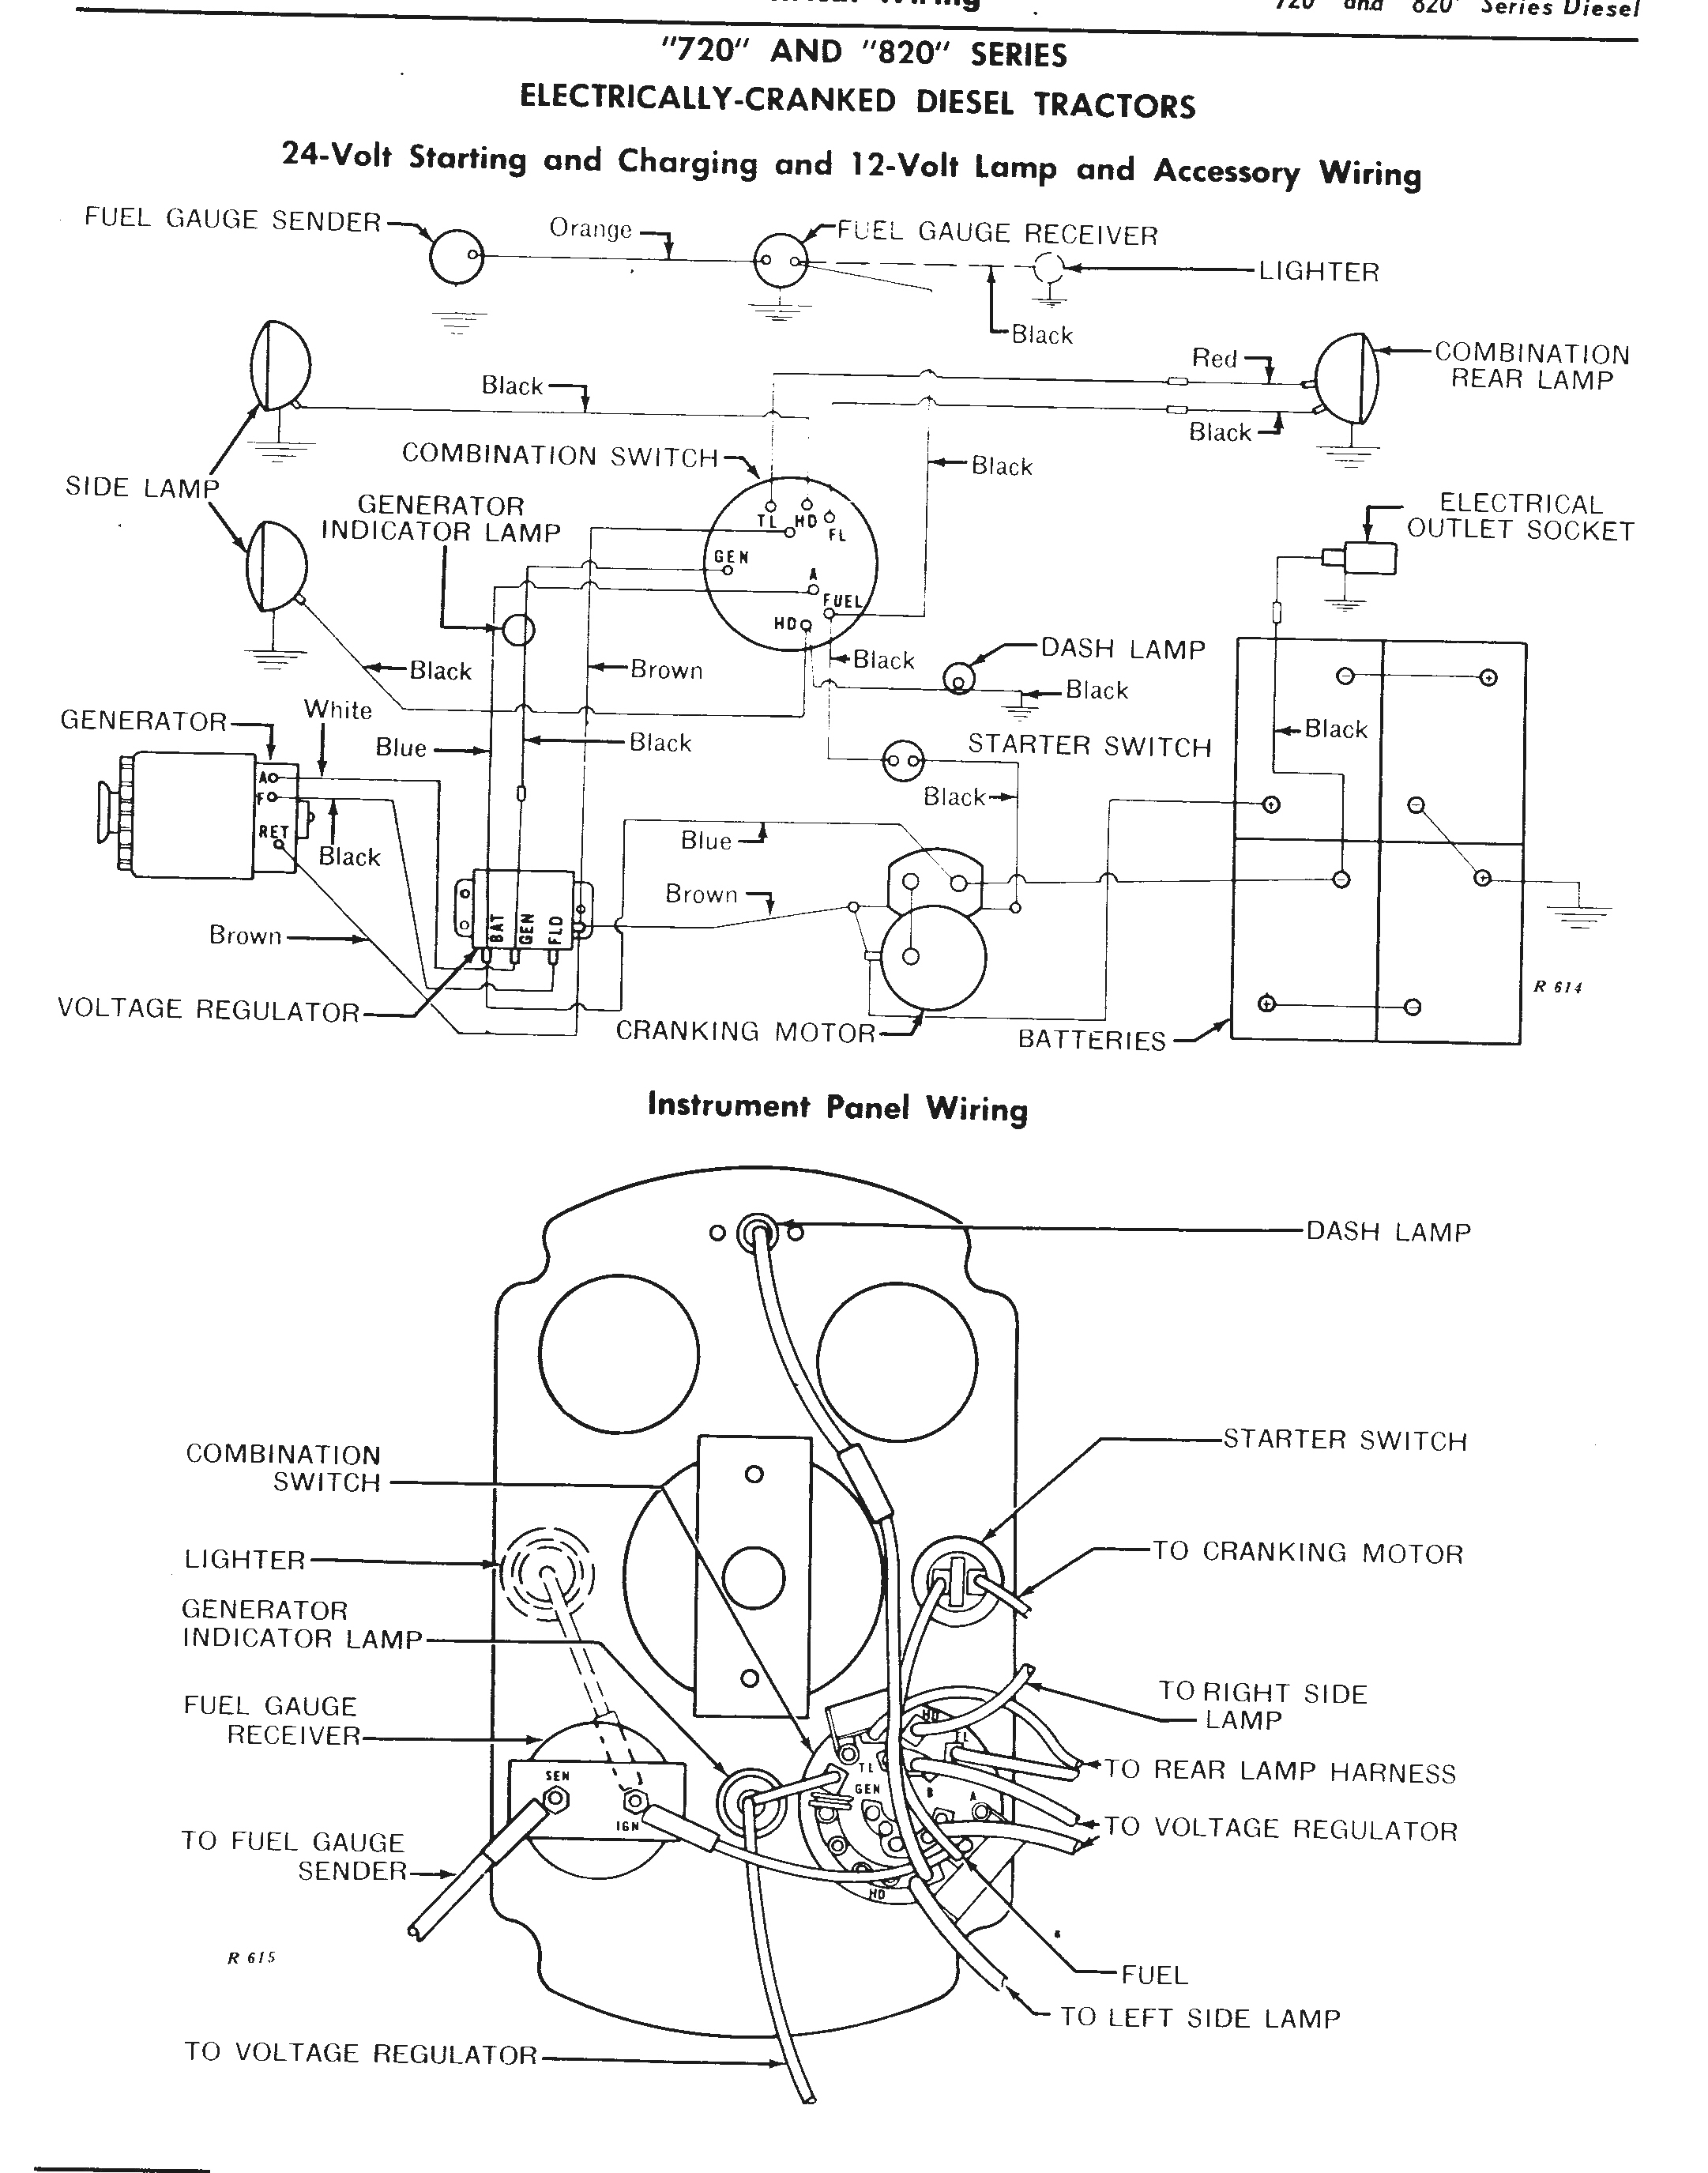 544 john deere fuse panel diagram wire center u2022 rh 207 246 123 107 John Deere Wiring Harness Diagram John Deere 5320 Electrical Diagram